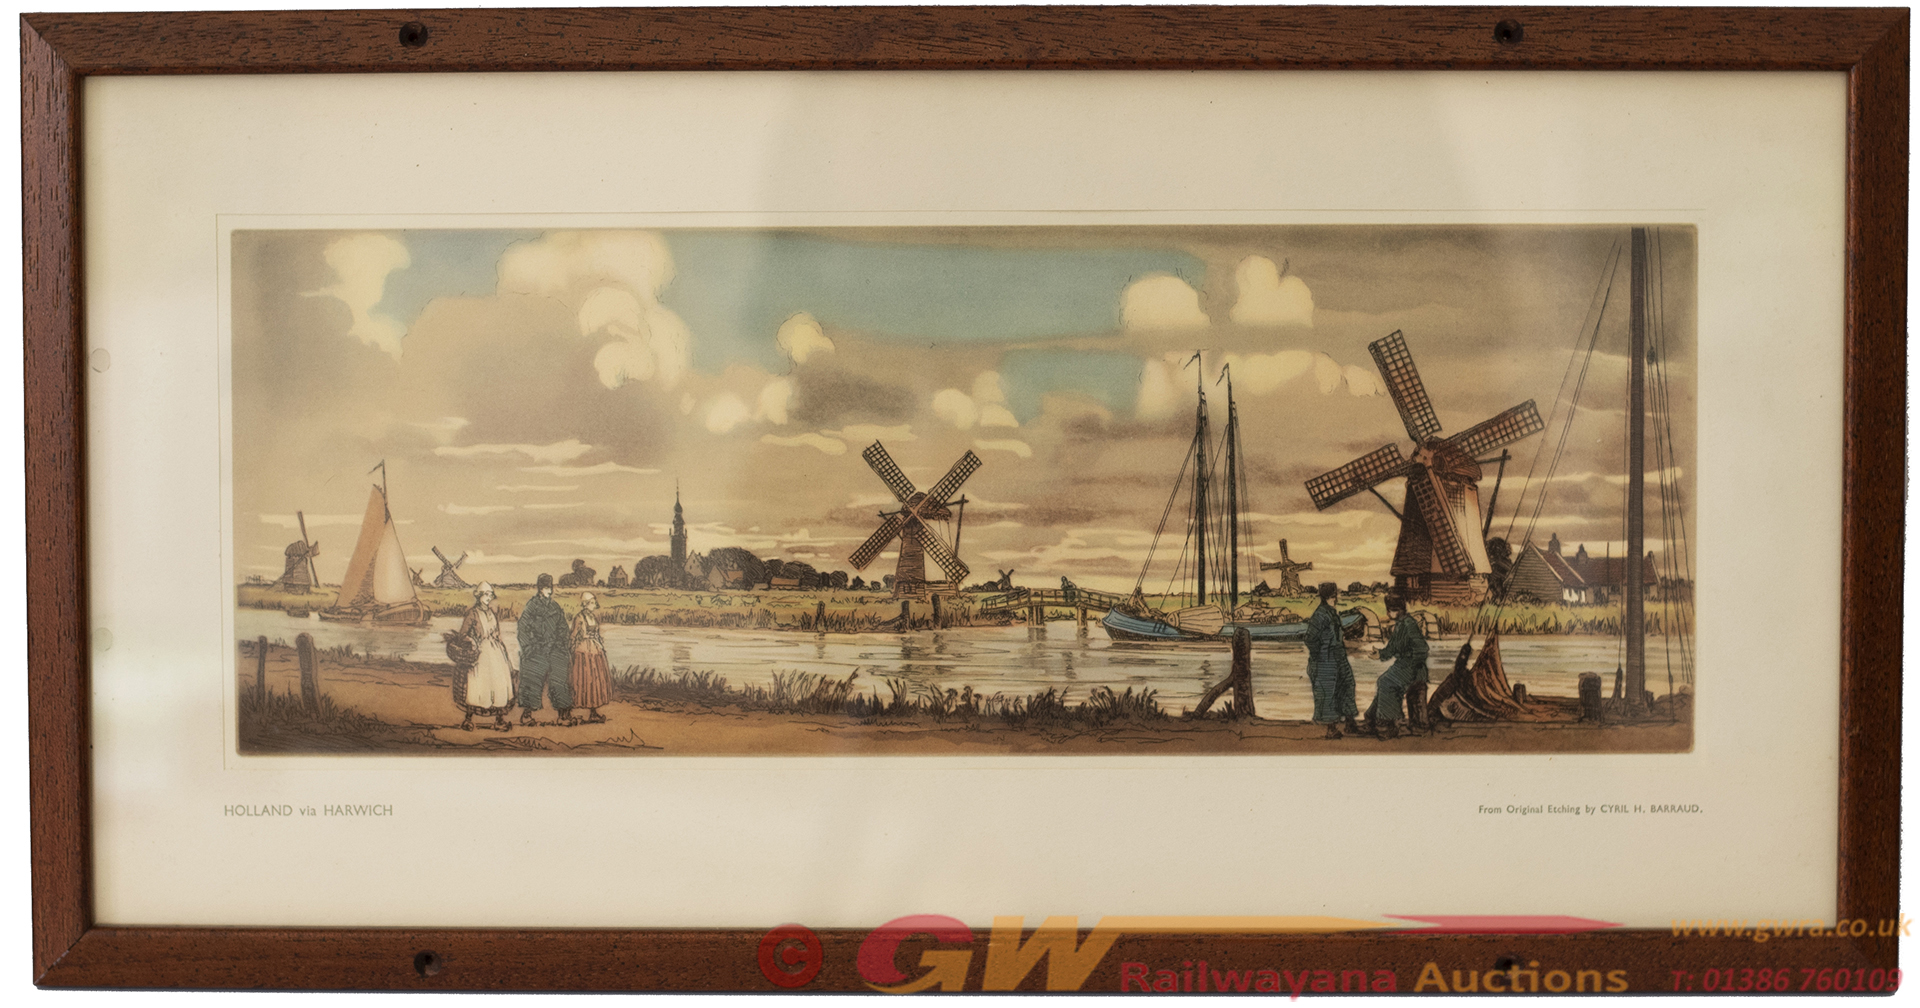 Carriage Print HOLLAND Via HARWICH From An